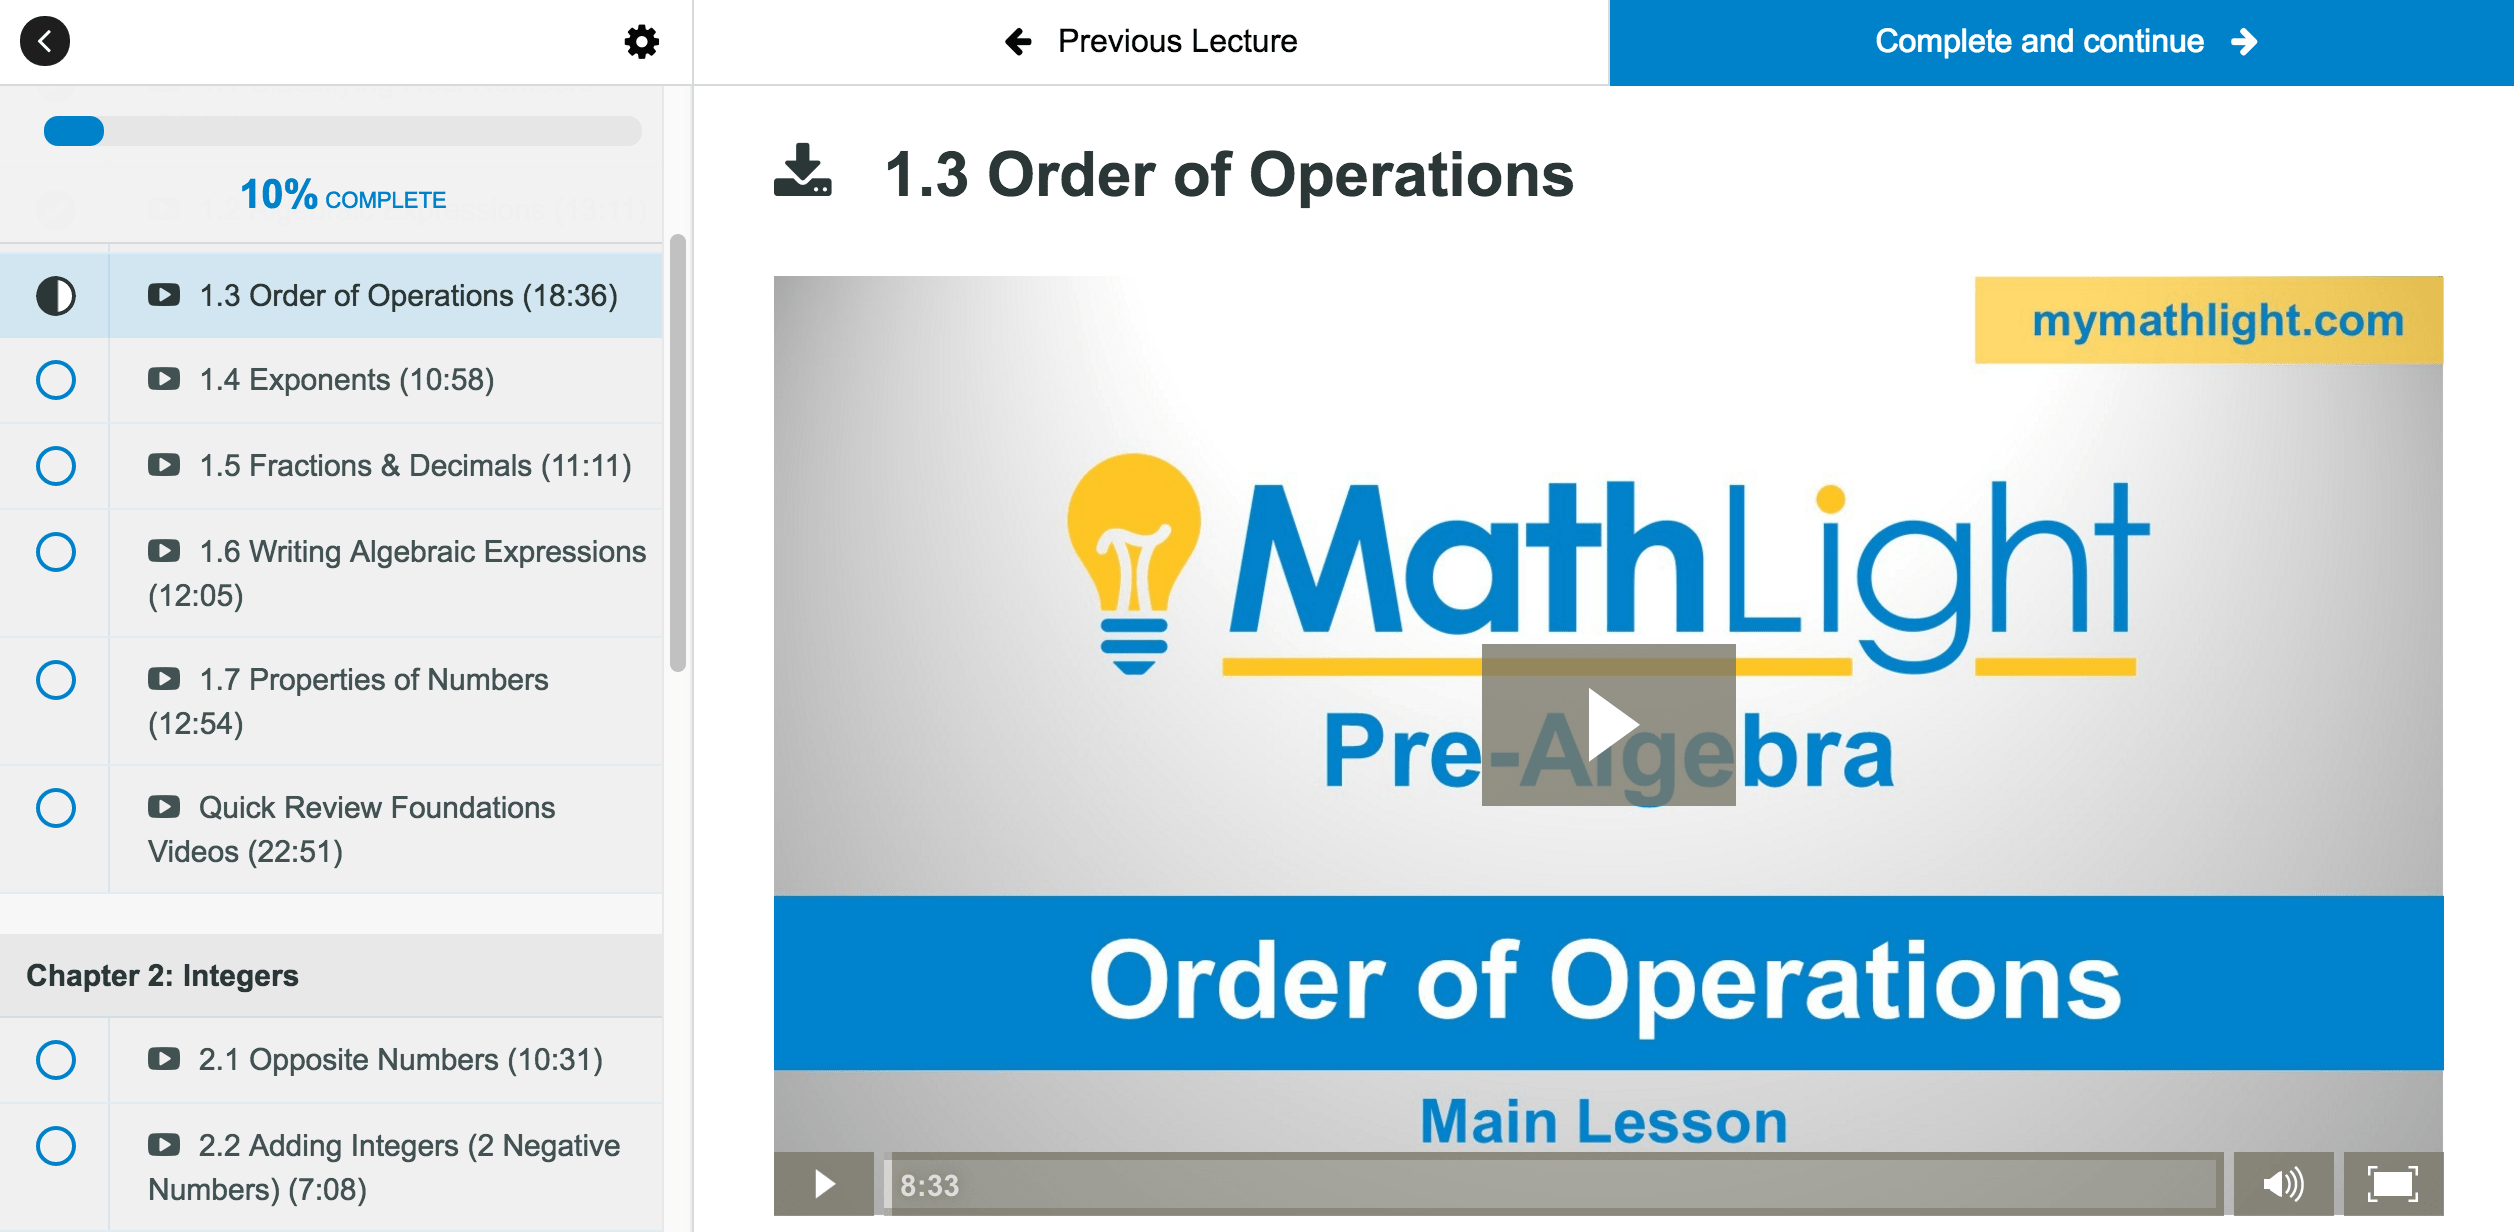 mathlight pre algebra videos